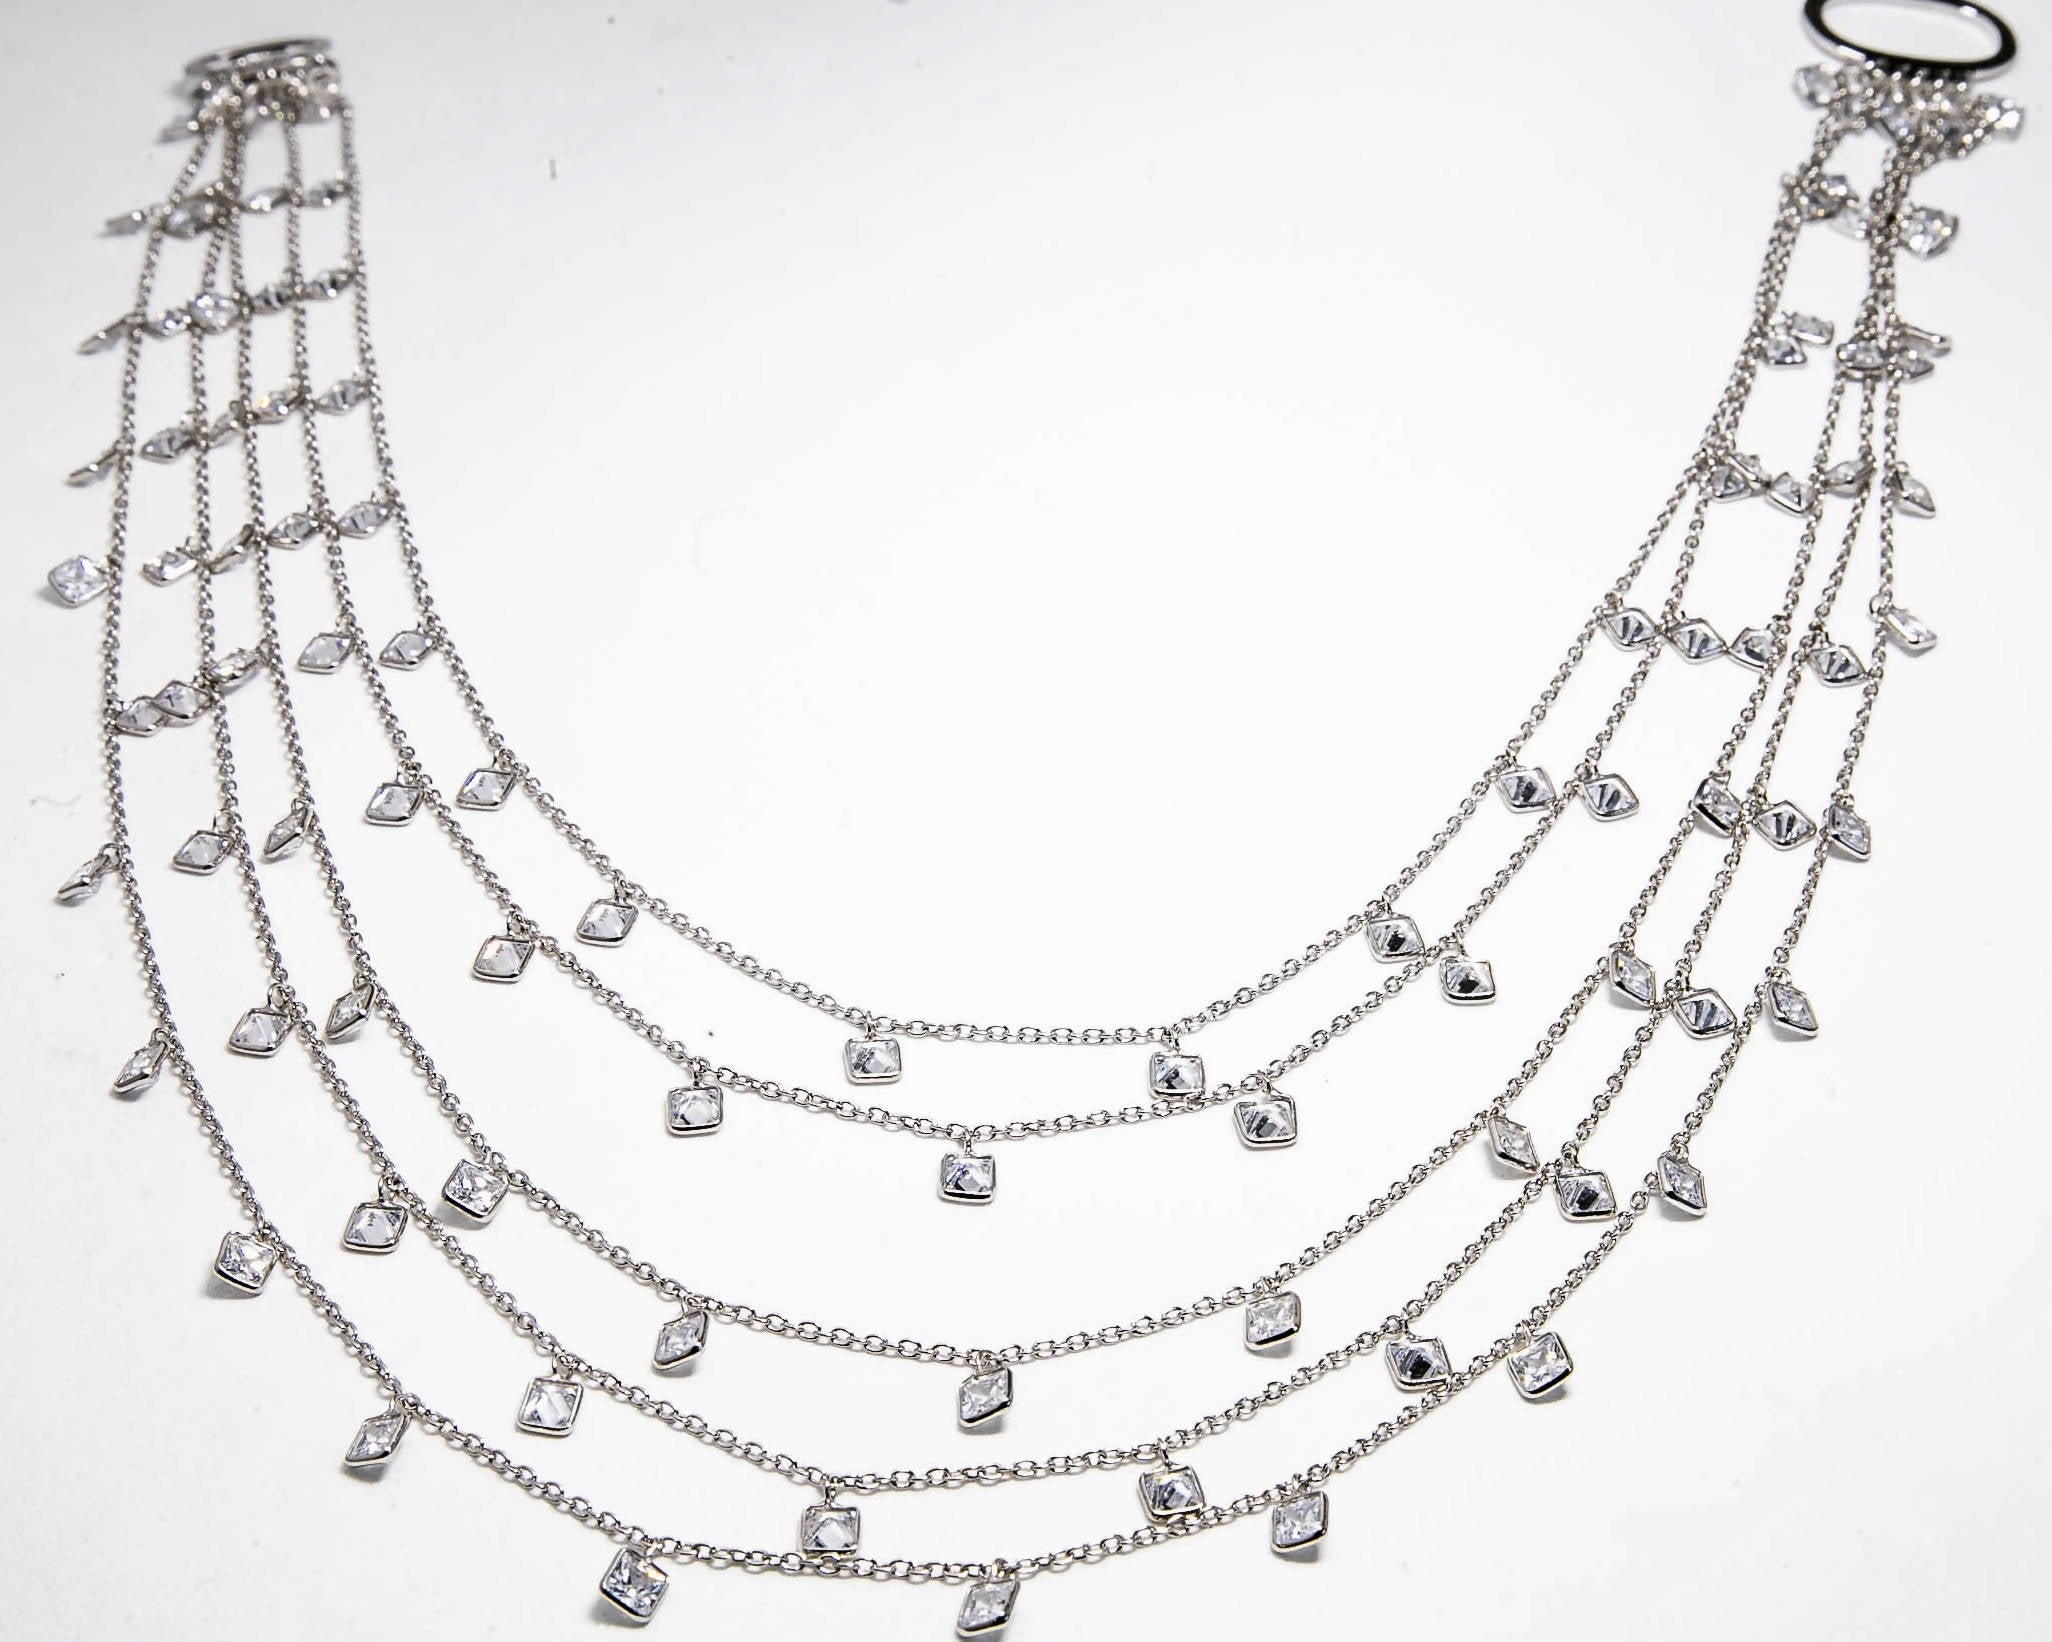 5 Strand Diamond Look Necklace